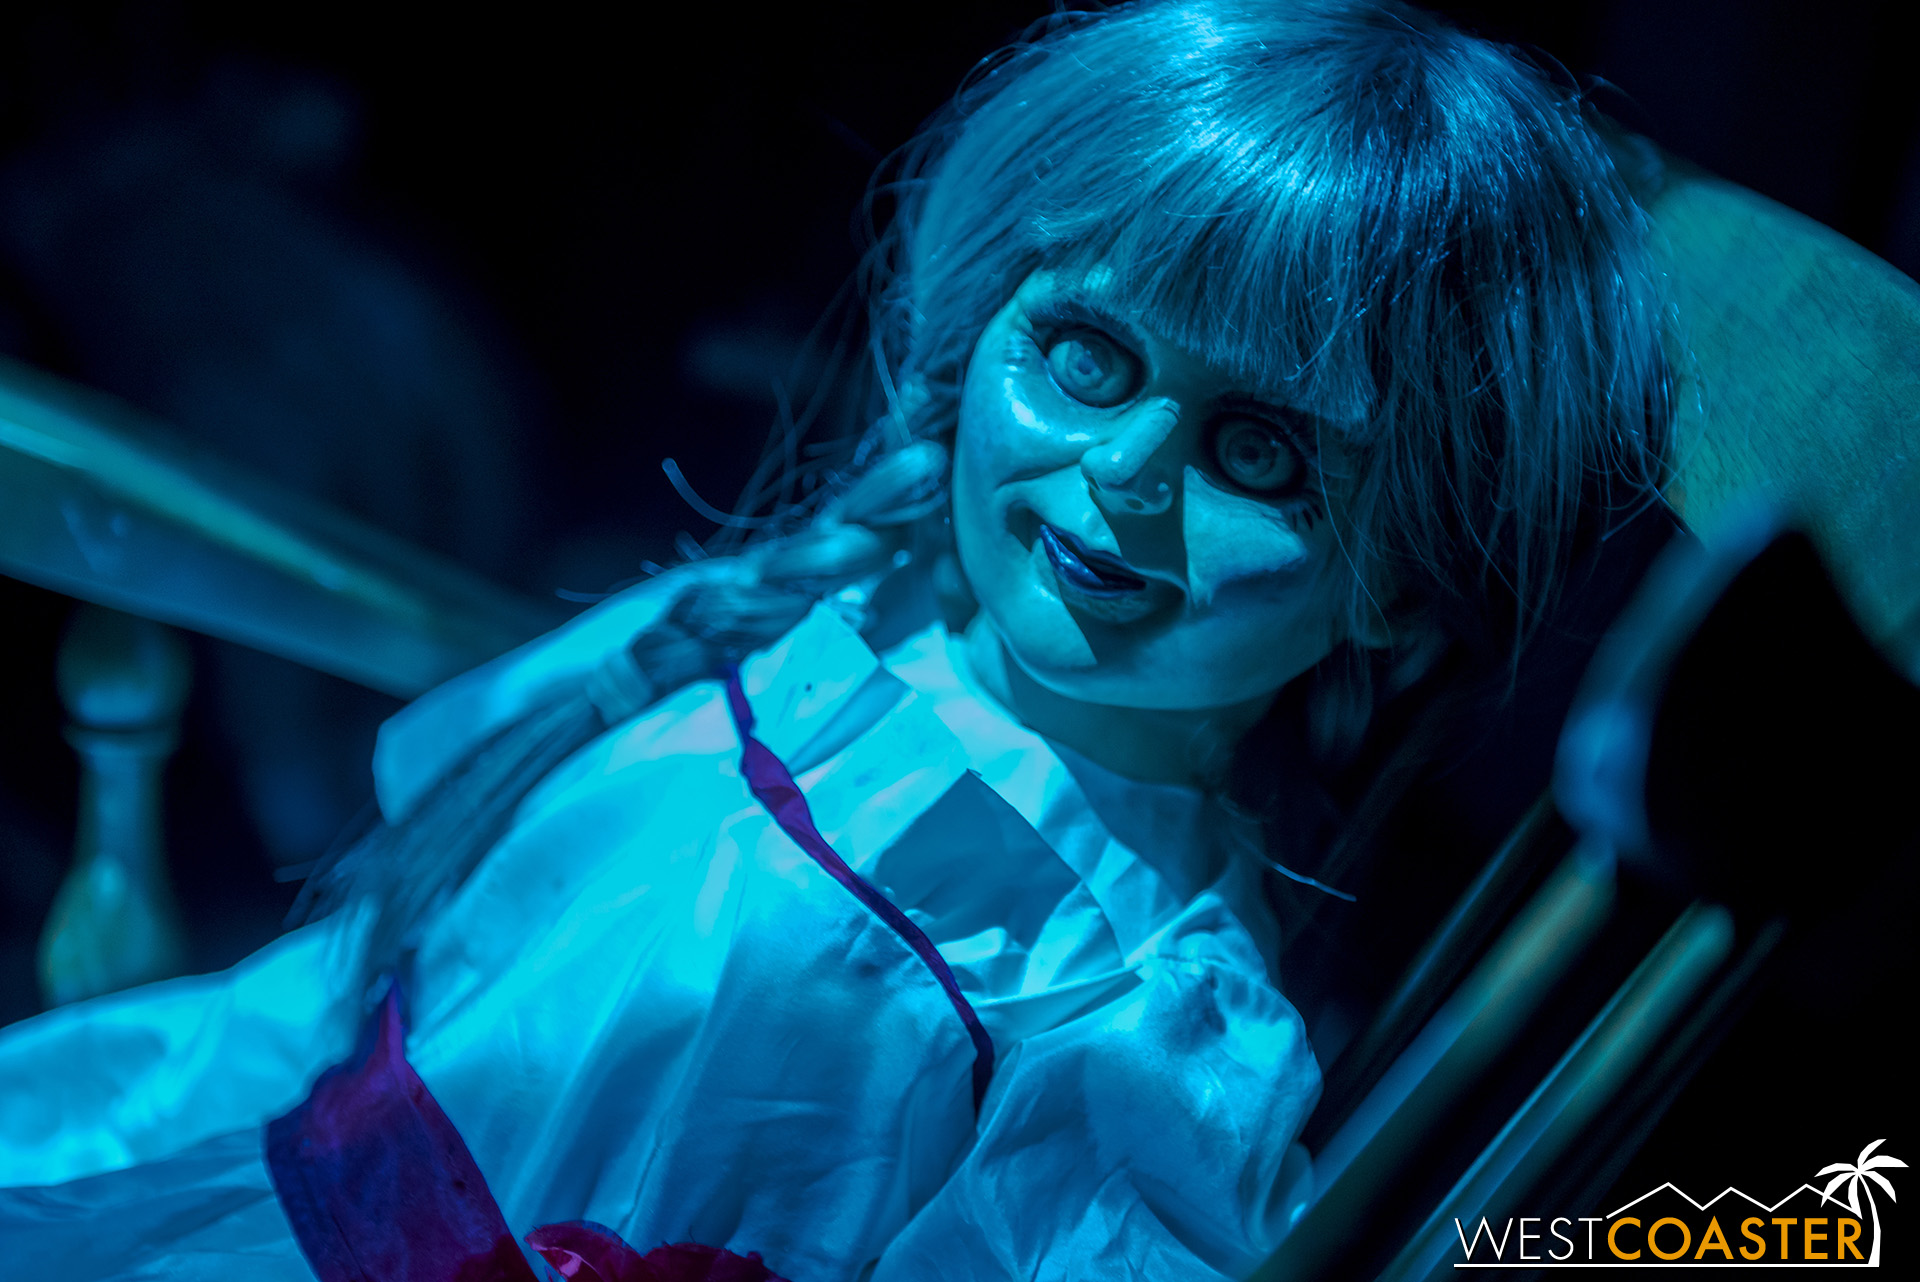 Naturally, guests encounter the wickedly terrifying Annabelle doll.